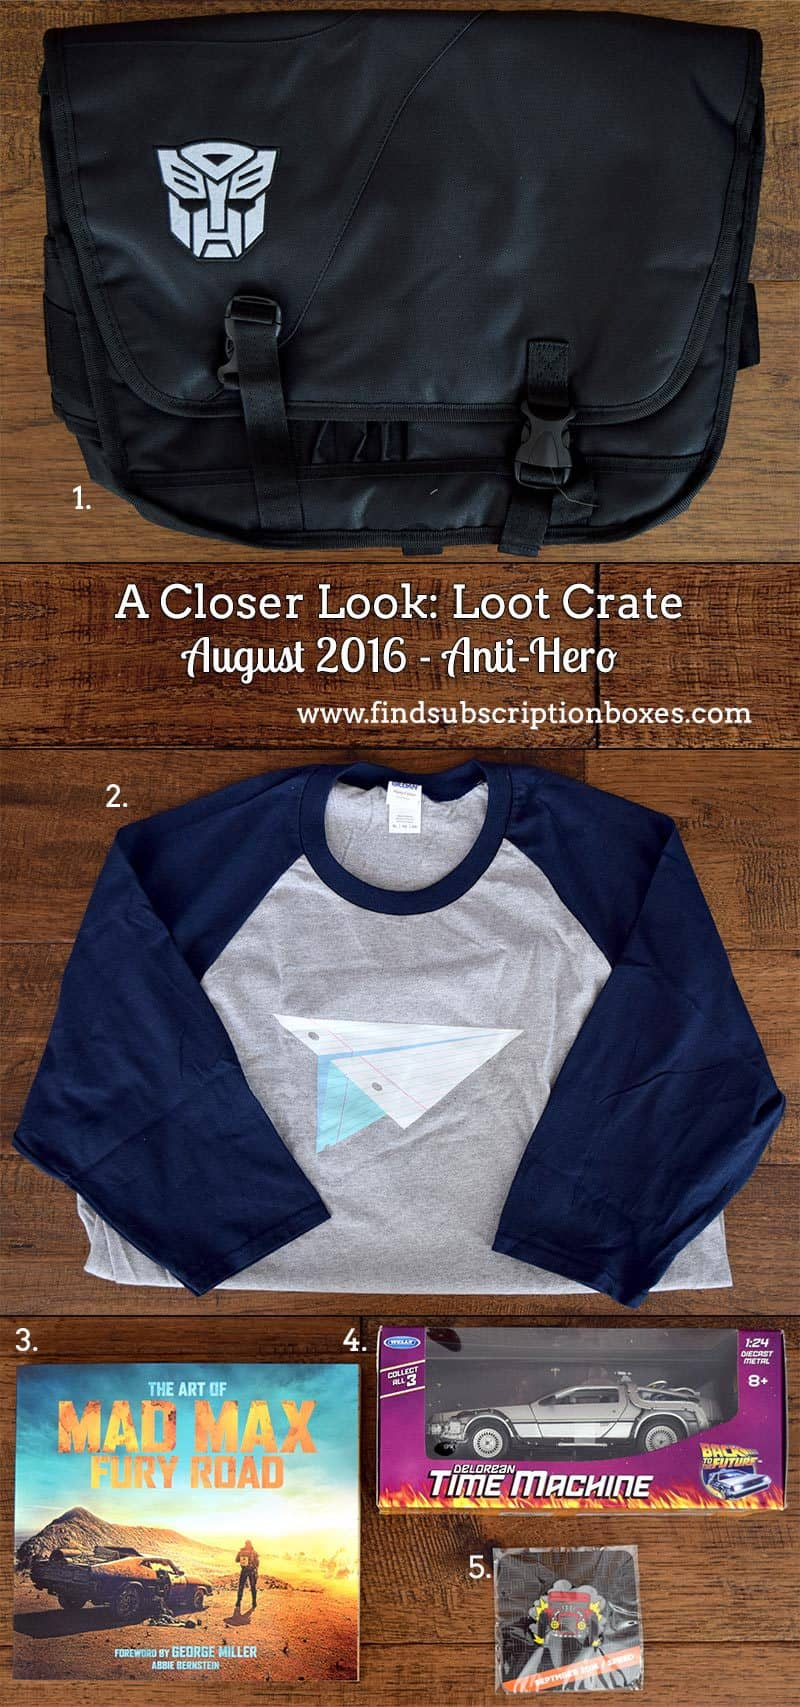 September 2016 Loot Crate DX Review - Speed - Inside the Box